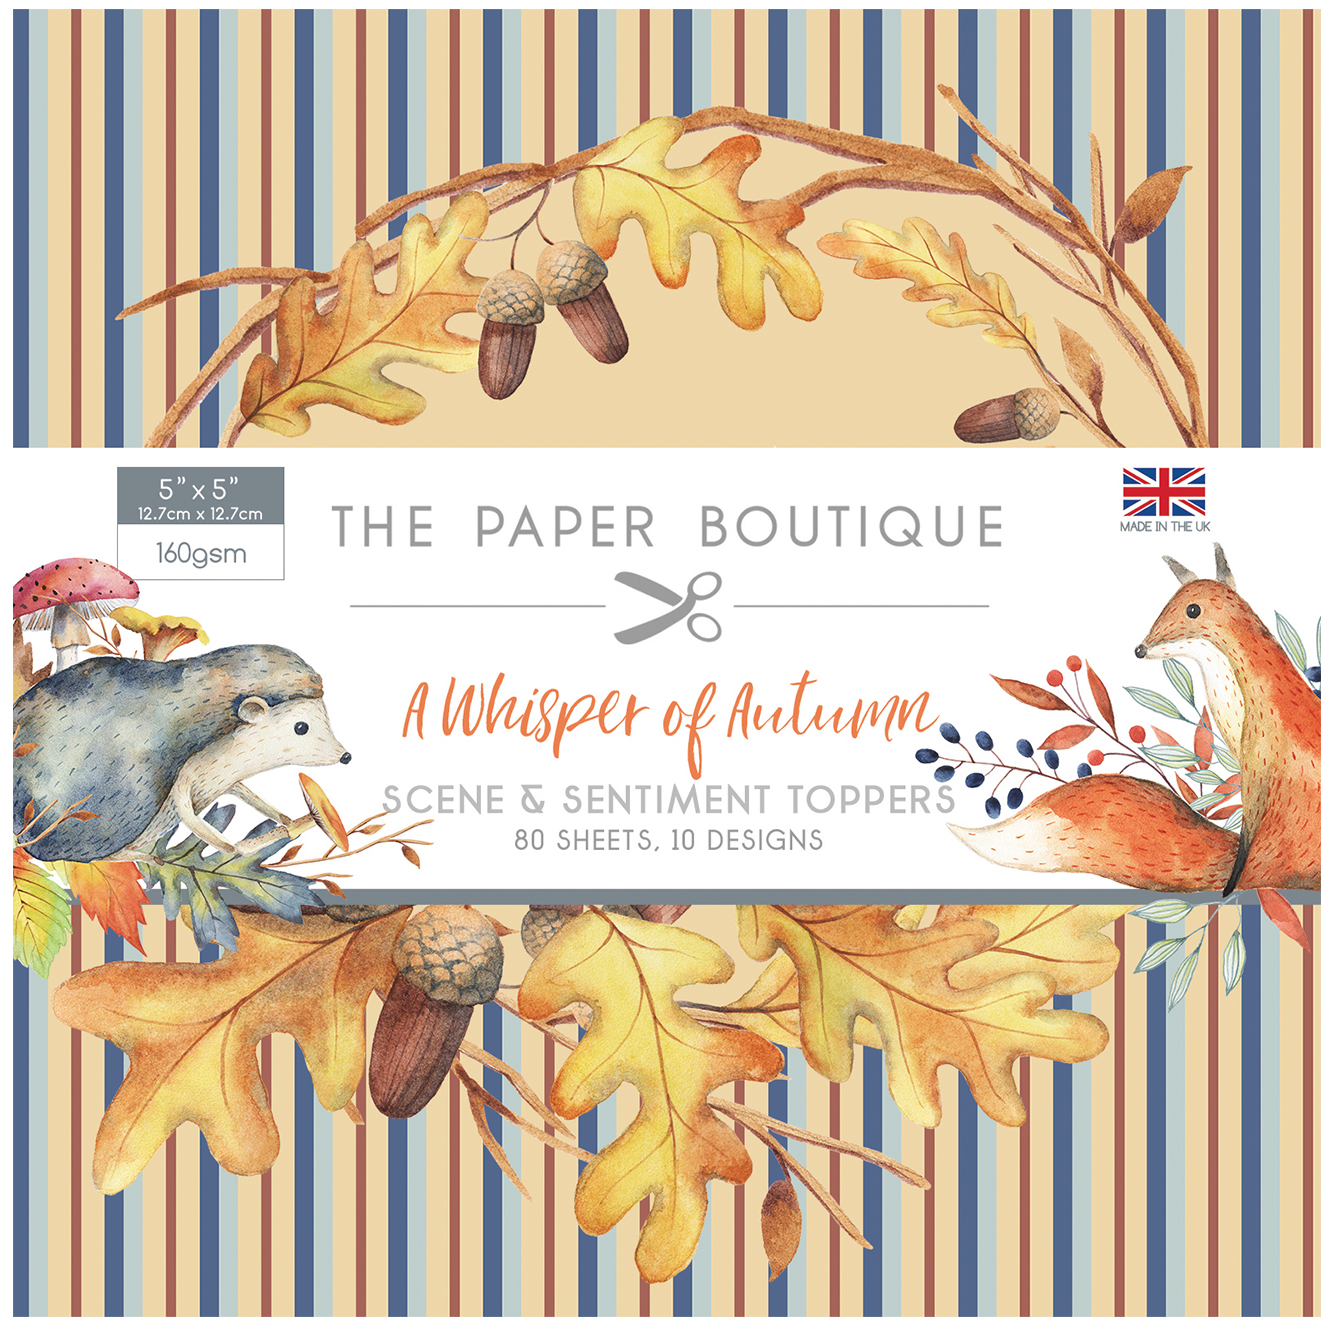 The Paper Boutique A Whisper of Autumn 5″ x 5″ Scene & Sentiment Pad